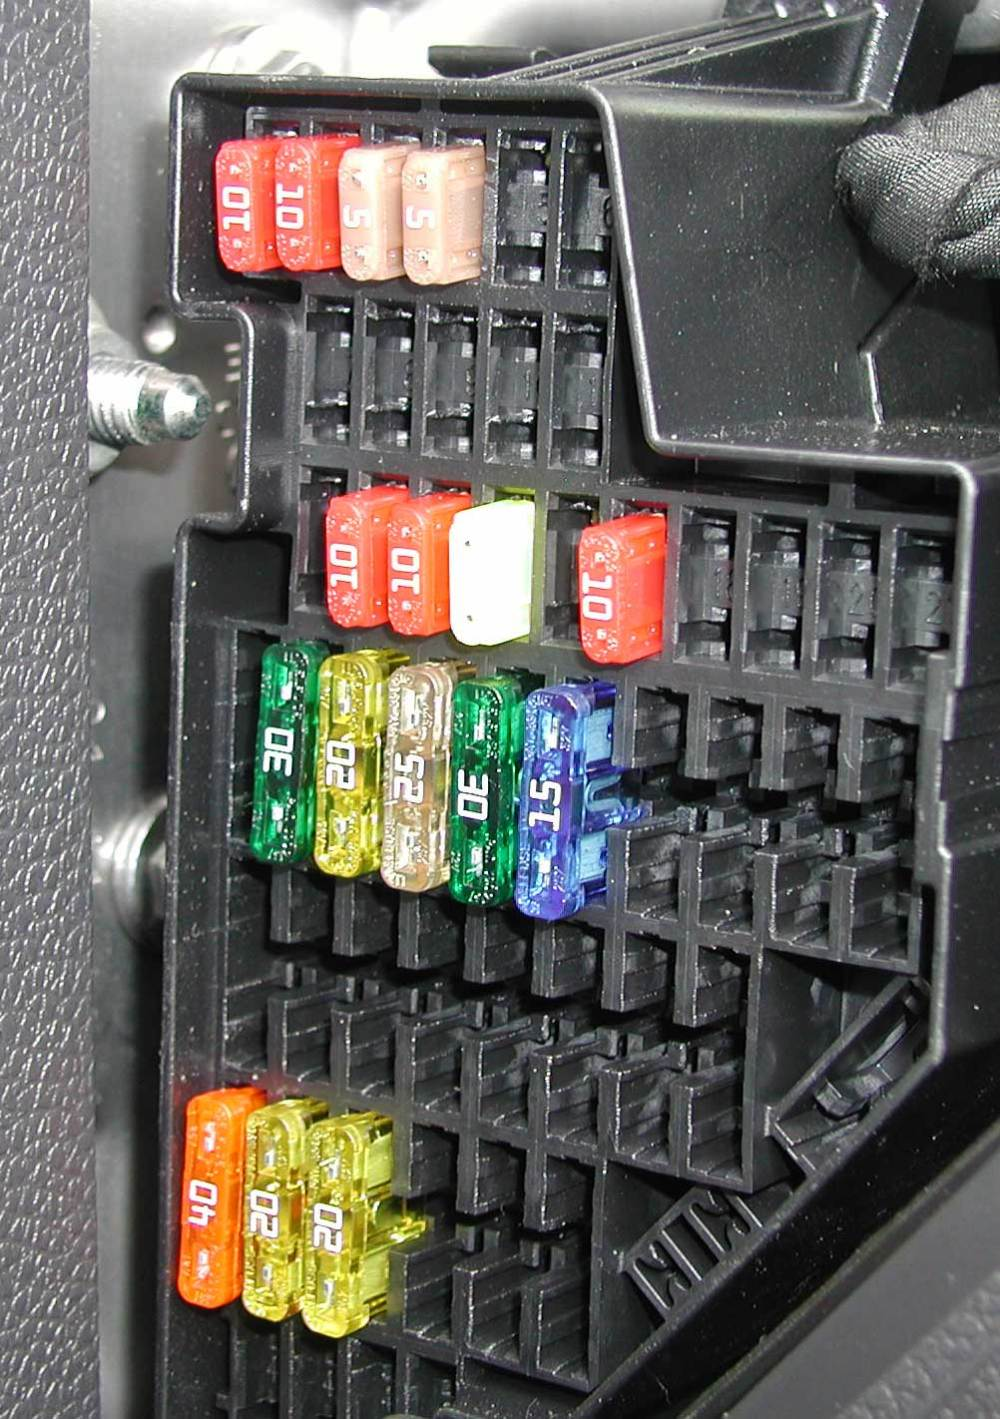 medium resolution of 2011 vw golf fuse diagram blog wiring diagram vw golf fuse box layout mk5 vw golf fuse box layout